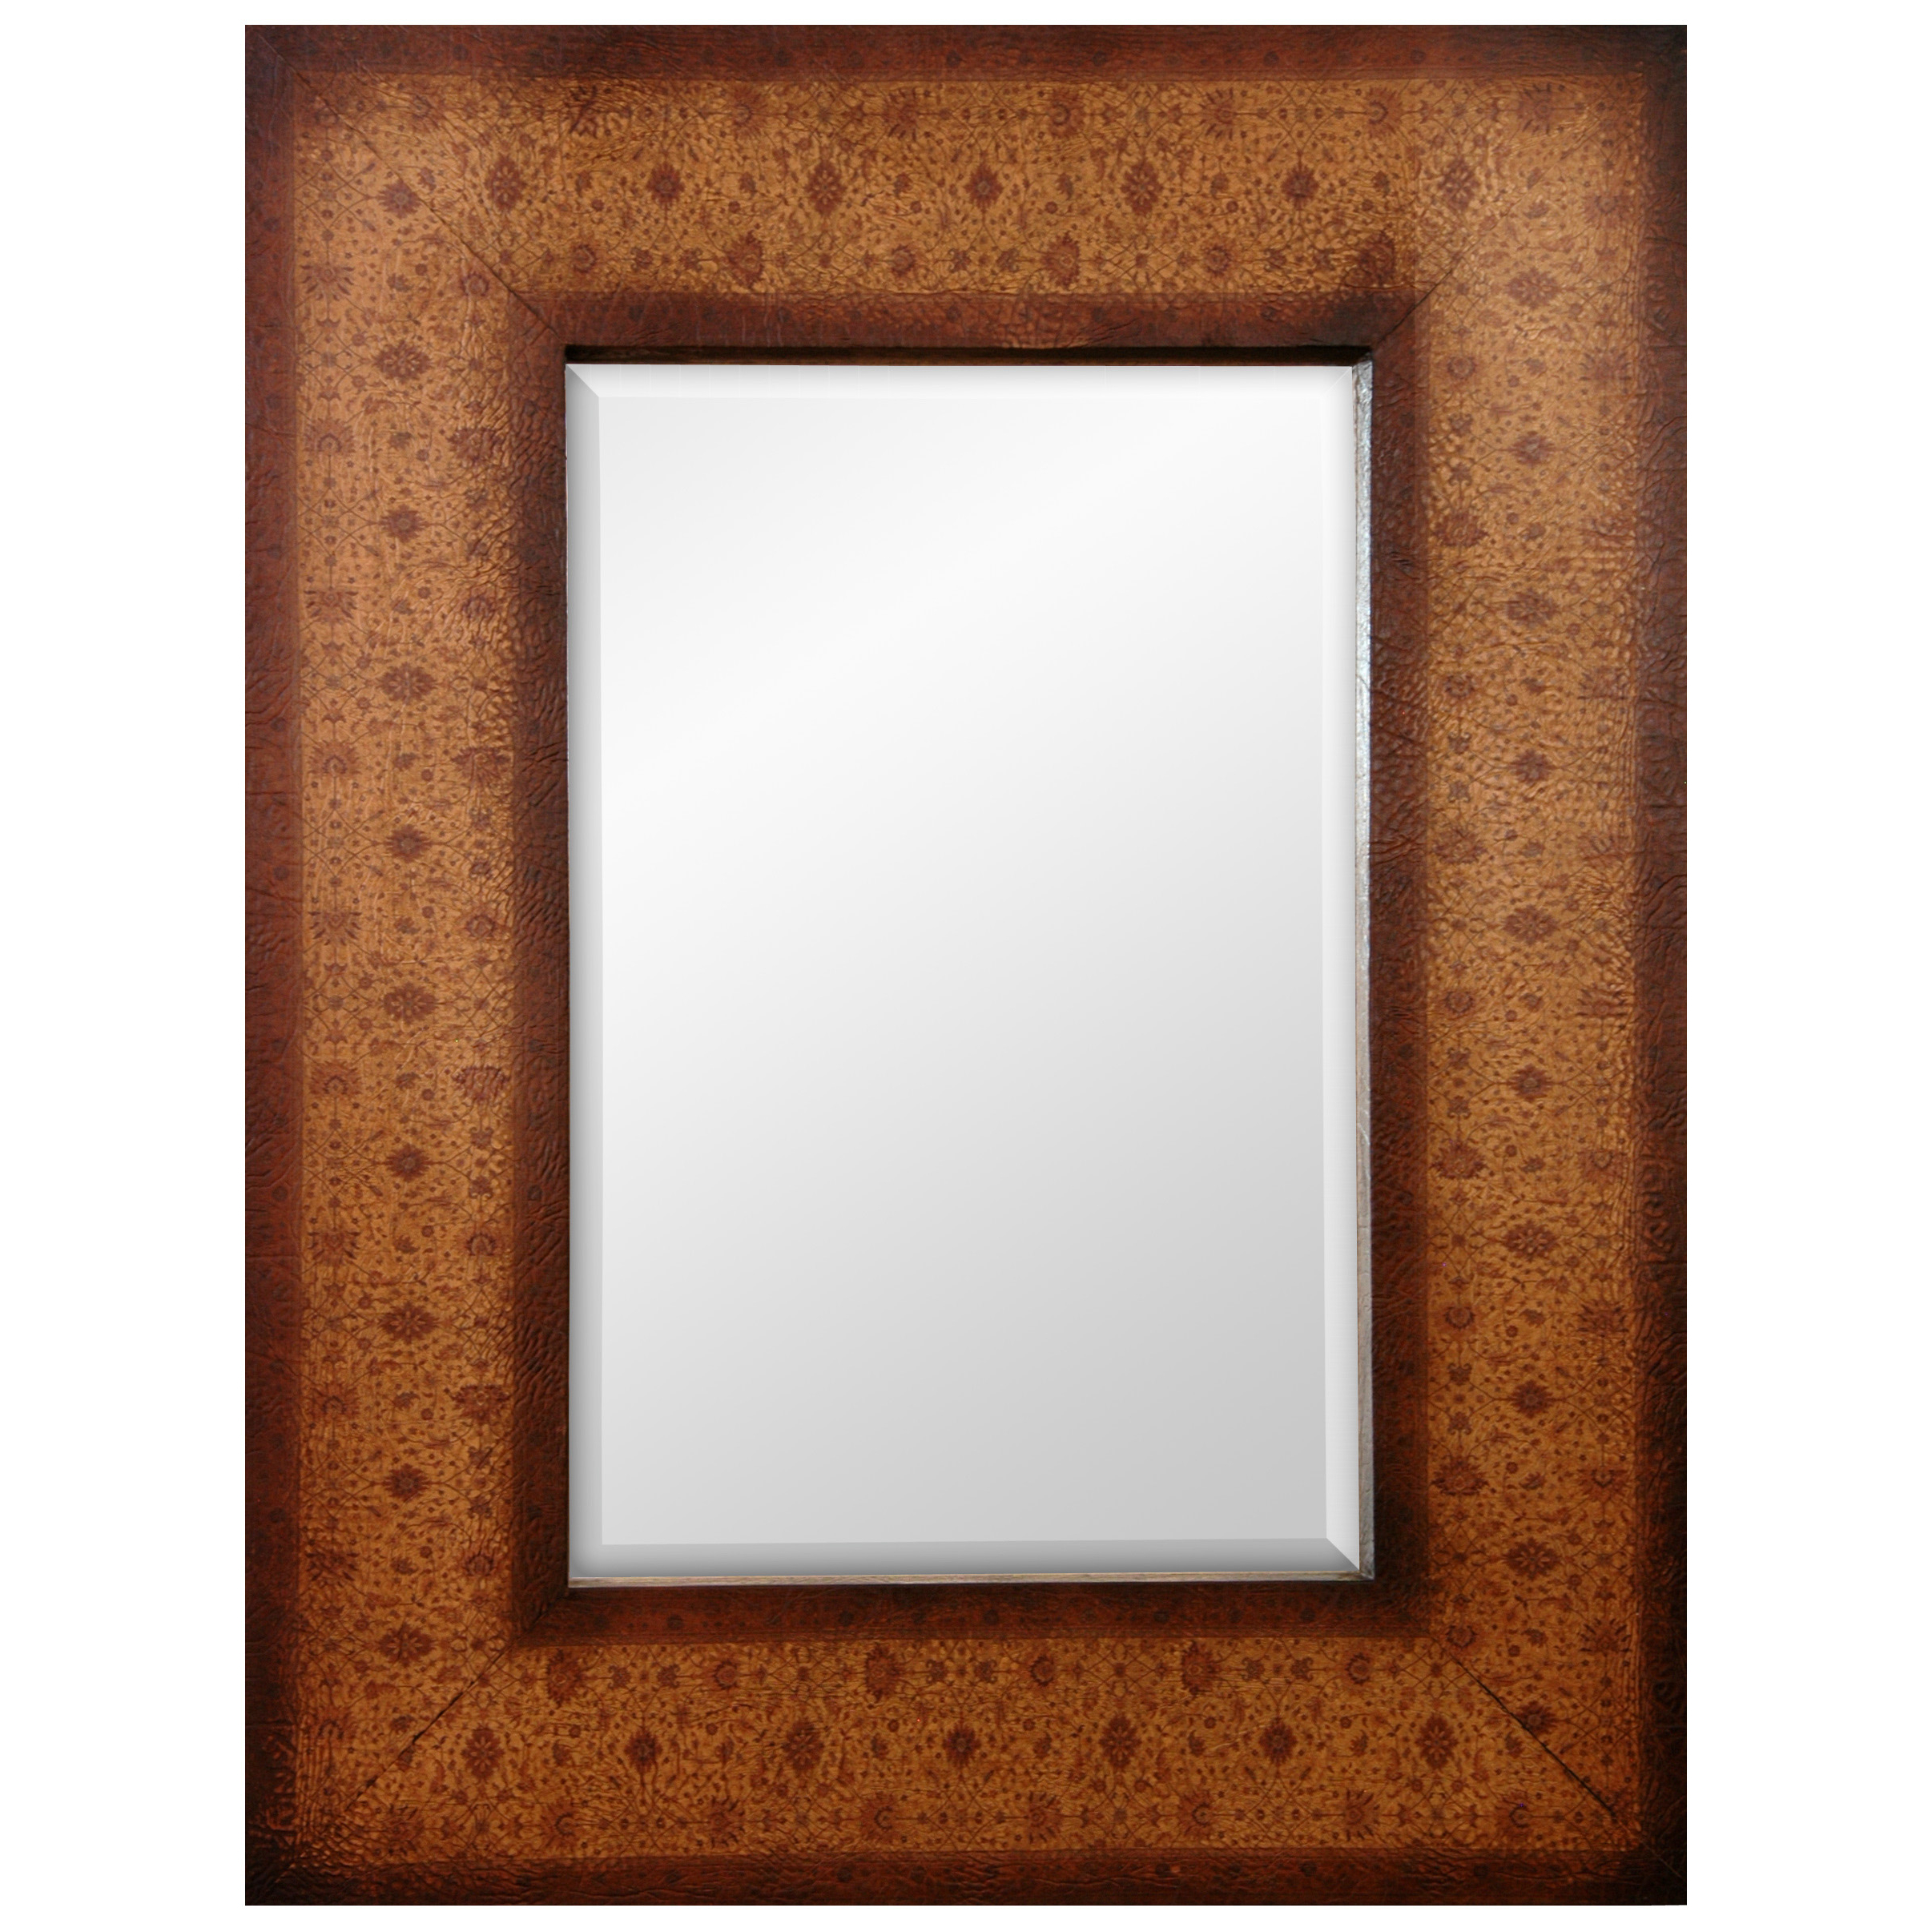 Asian Style Wall Mirrors Regarding Latest Buy Mirrors Online (View 8 of 20)